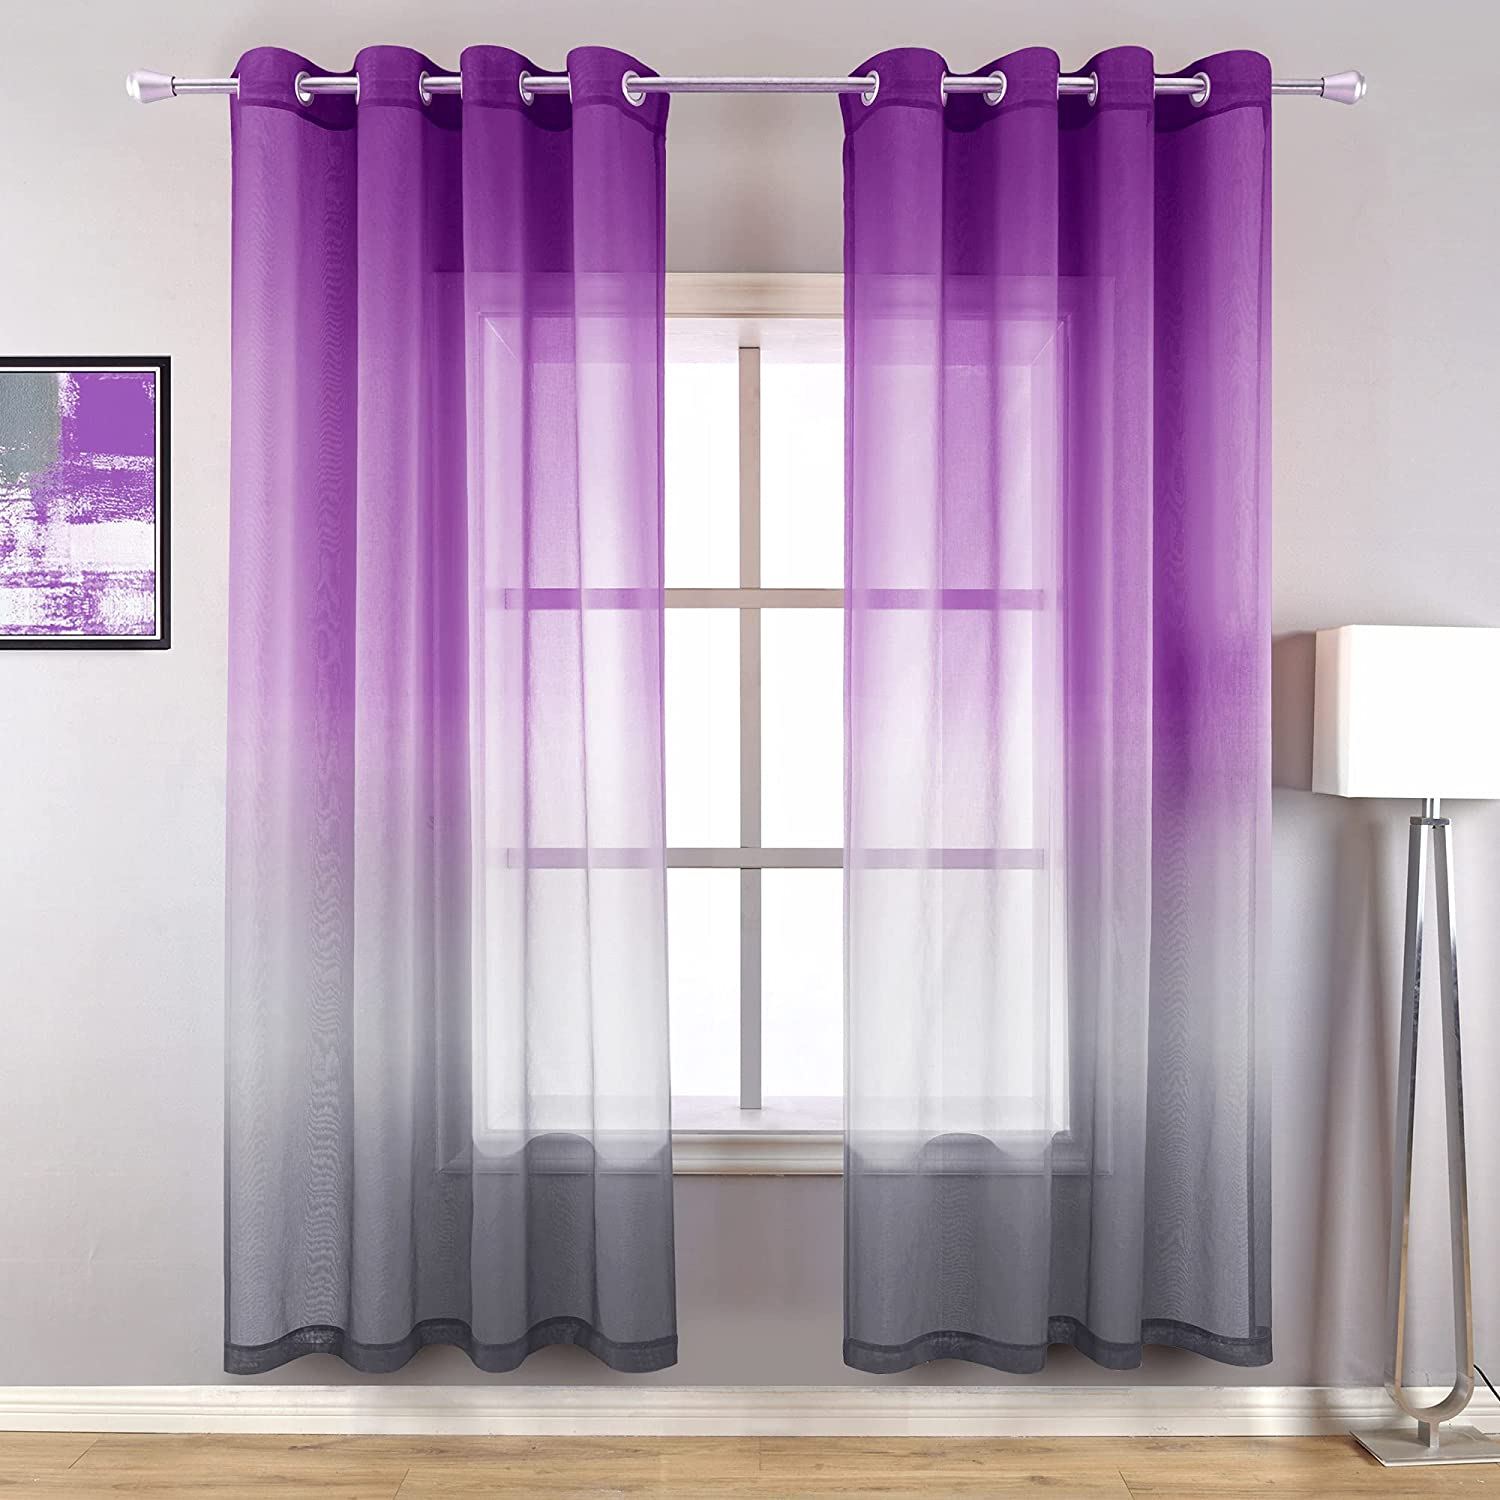 Purple and Grey Glam Room Decor for Home Ombre Pattern Design Sheer Modern Luxury Curtains for Living Room Set of 2 Panels 52 x 63 Inch Length